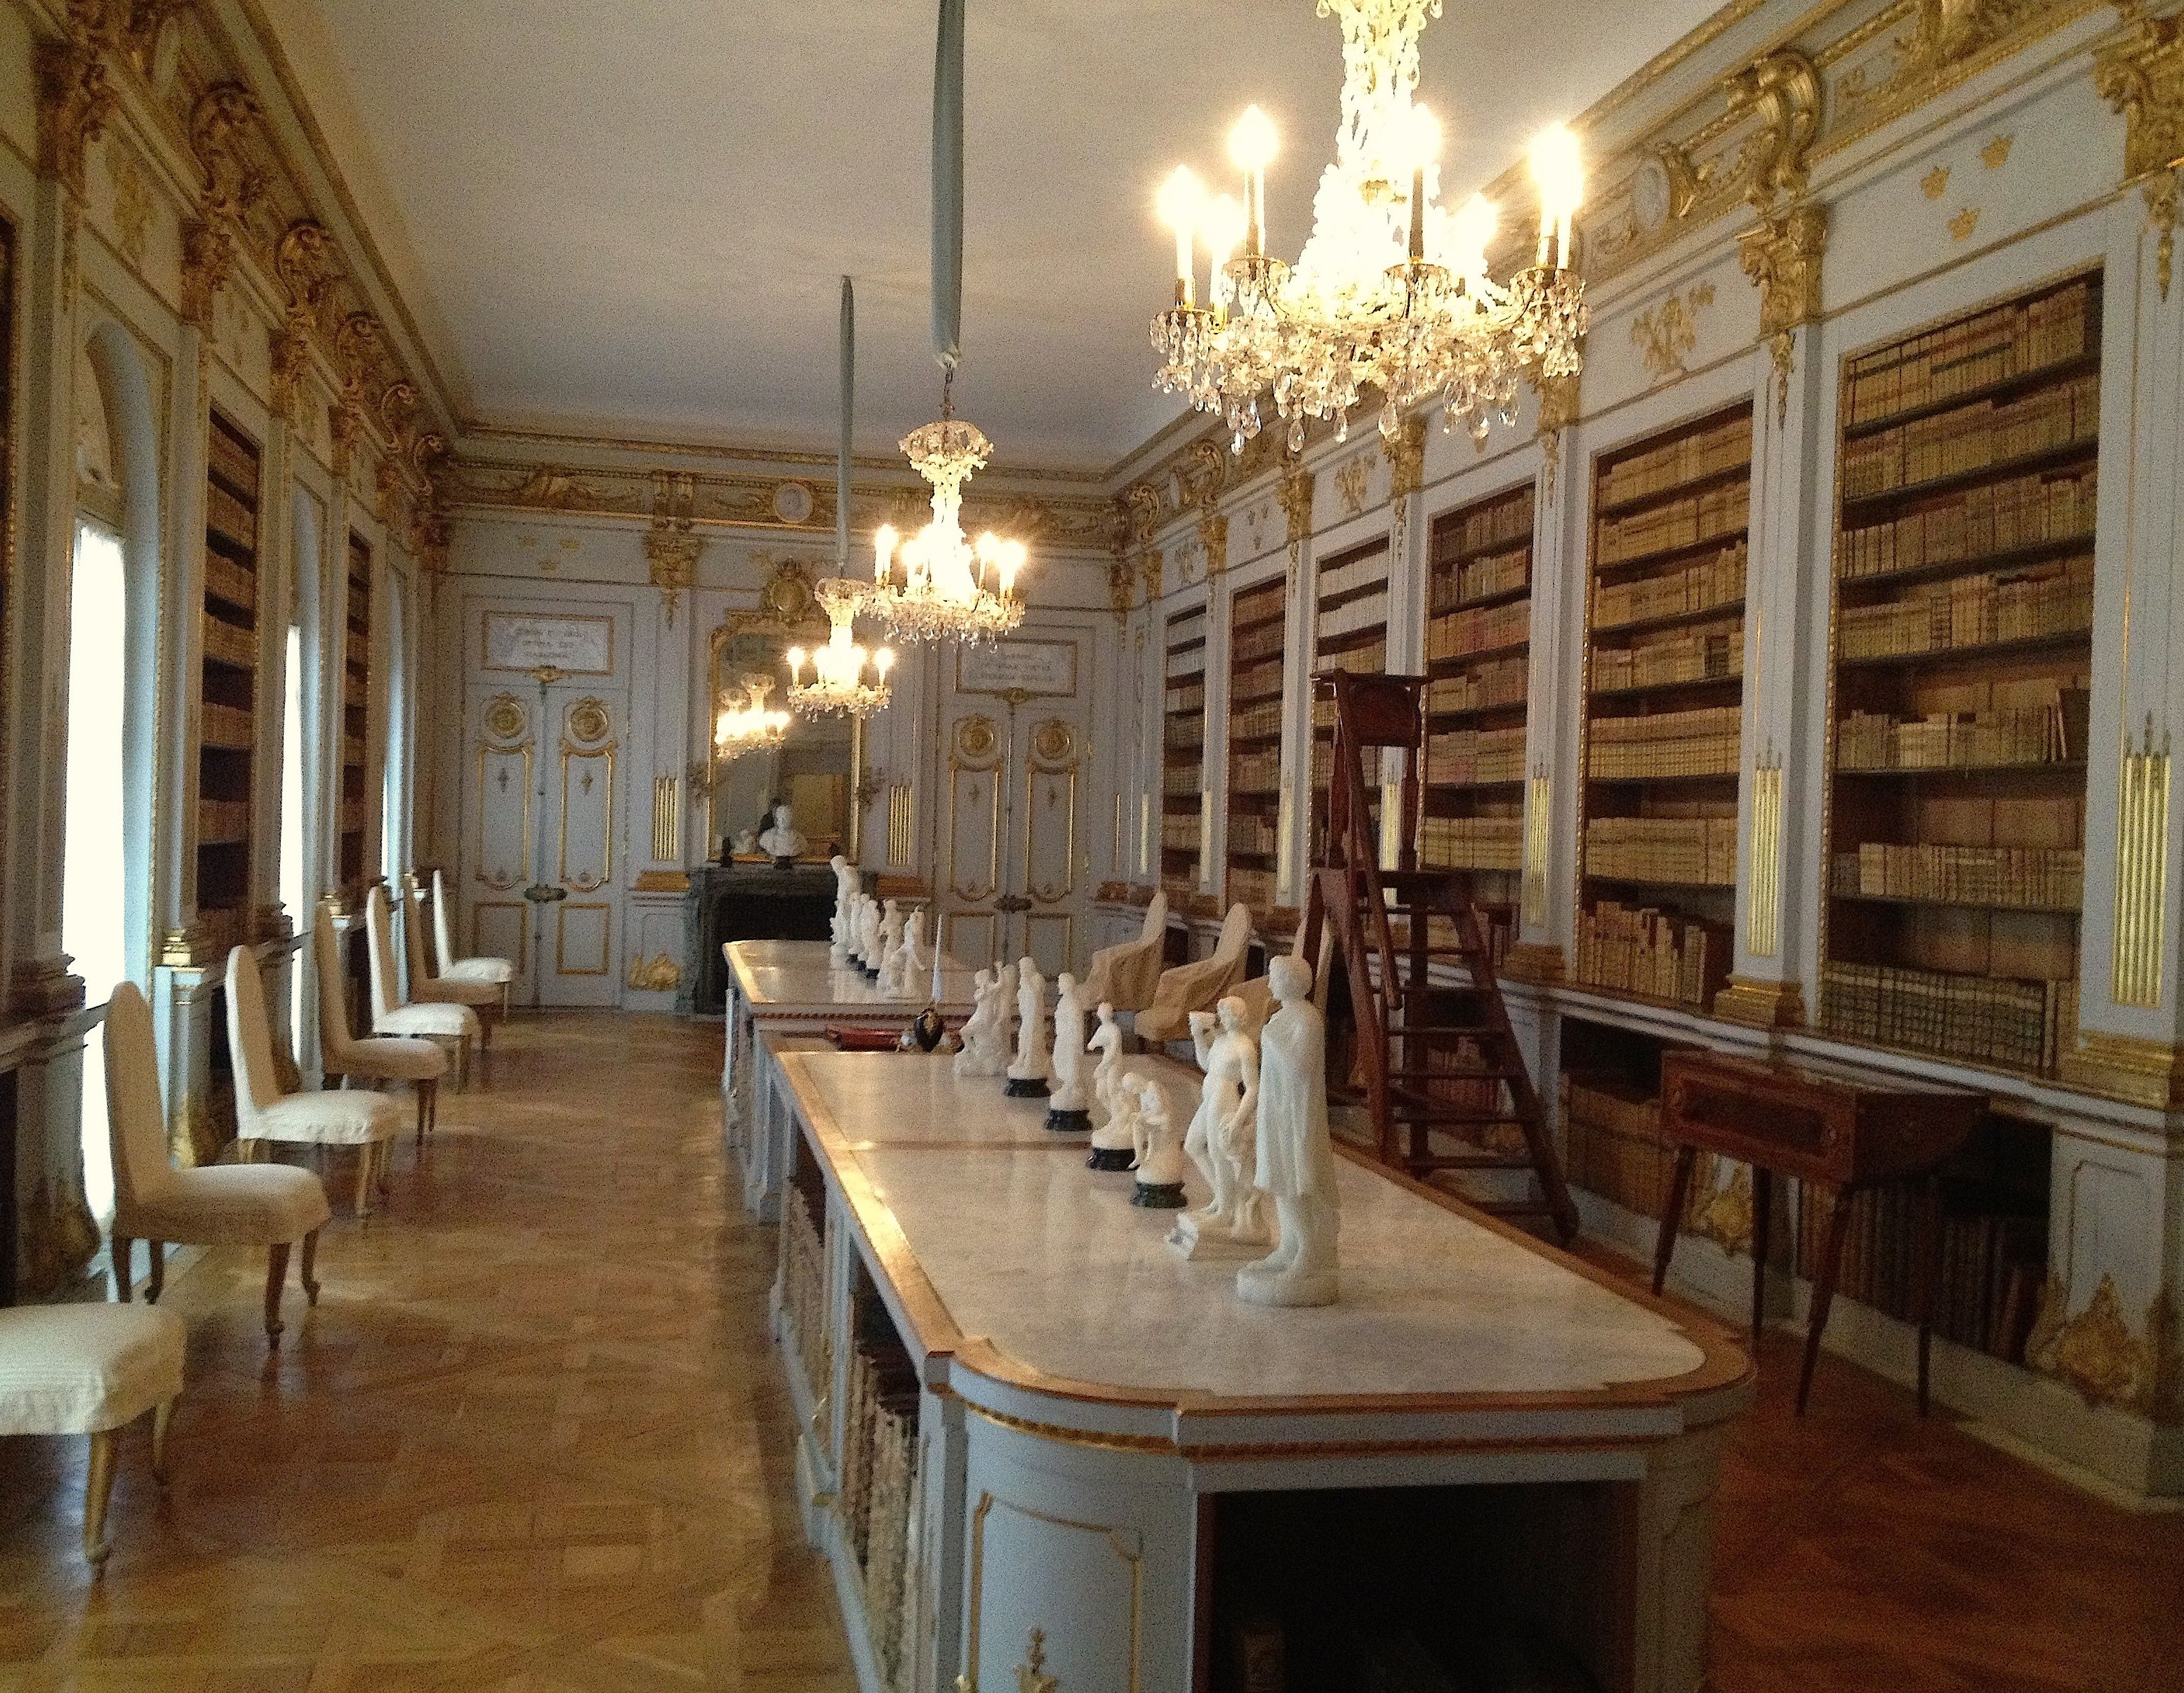 The queens library at drottningholm palace stockholm palace interior interior and exterior peles